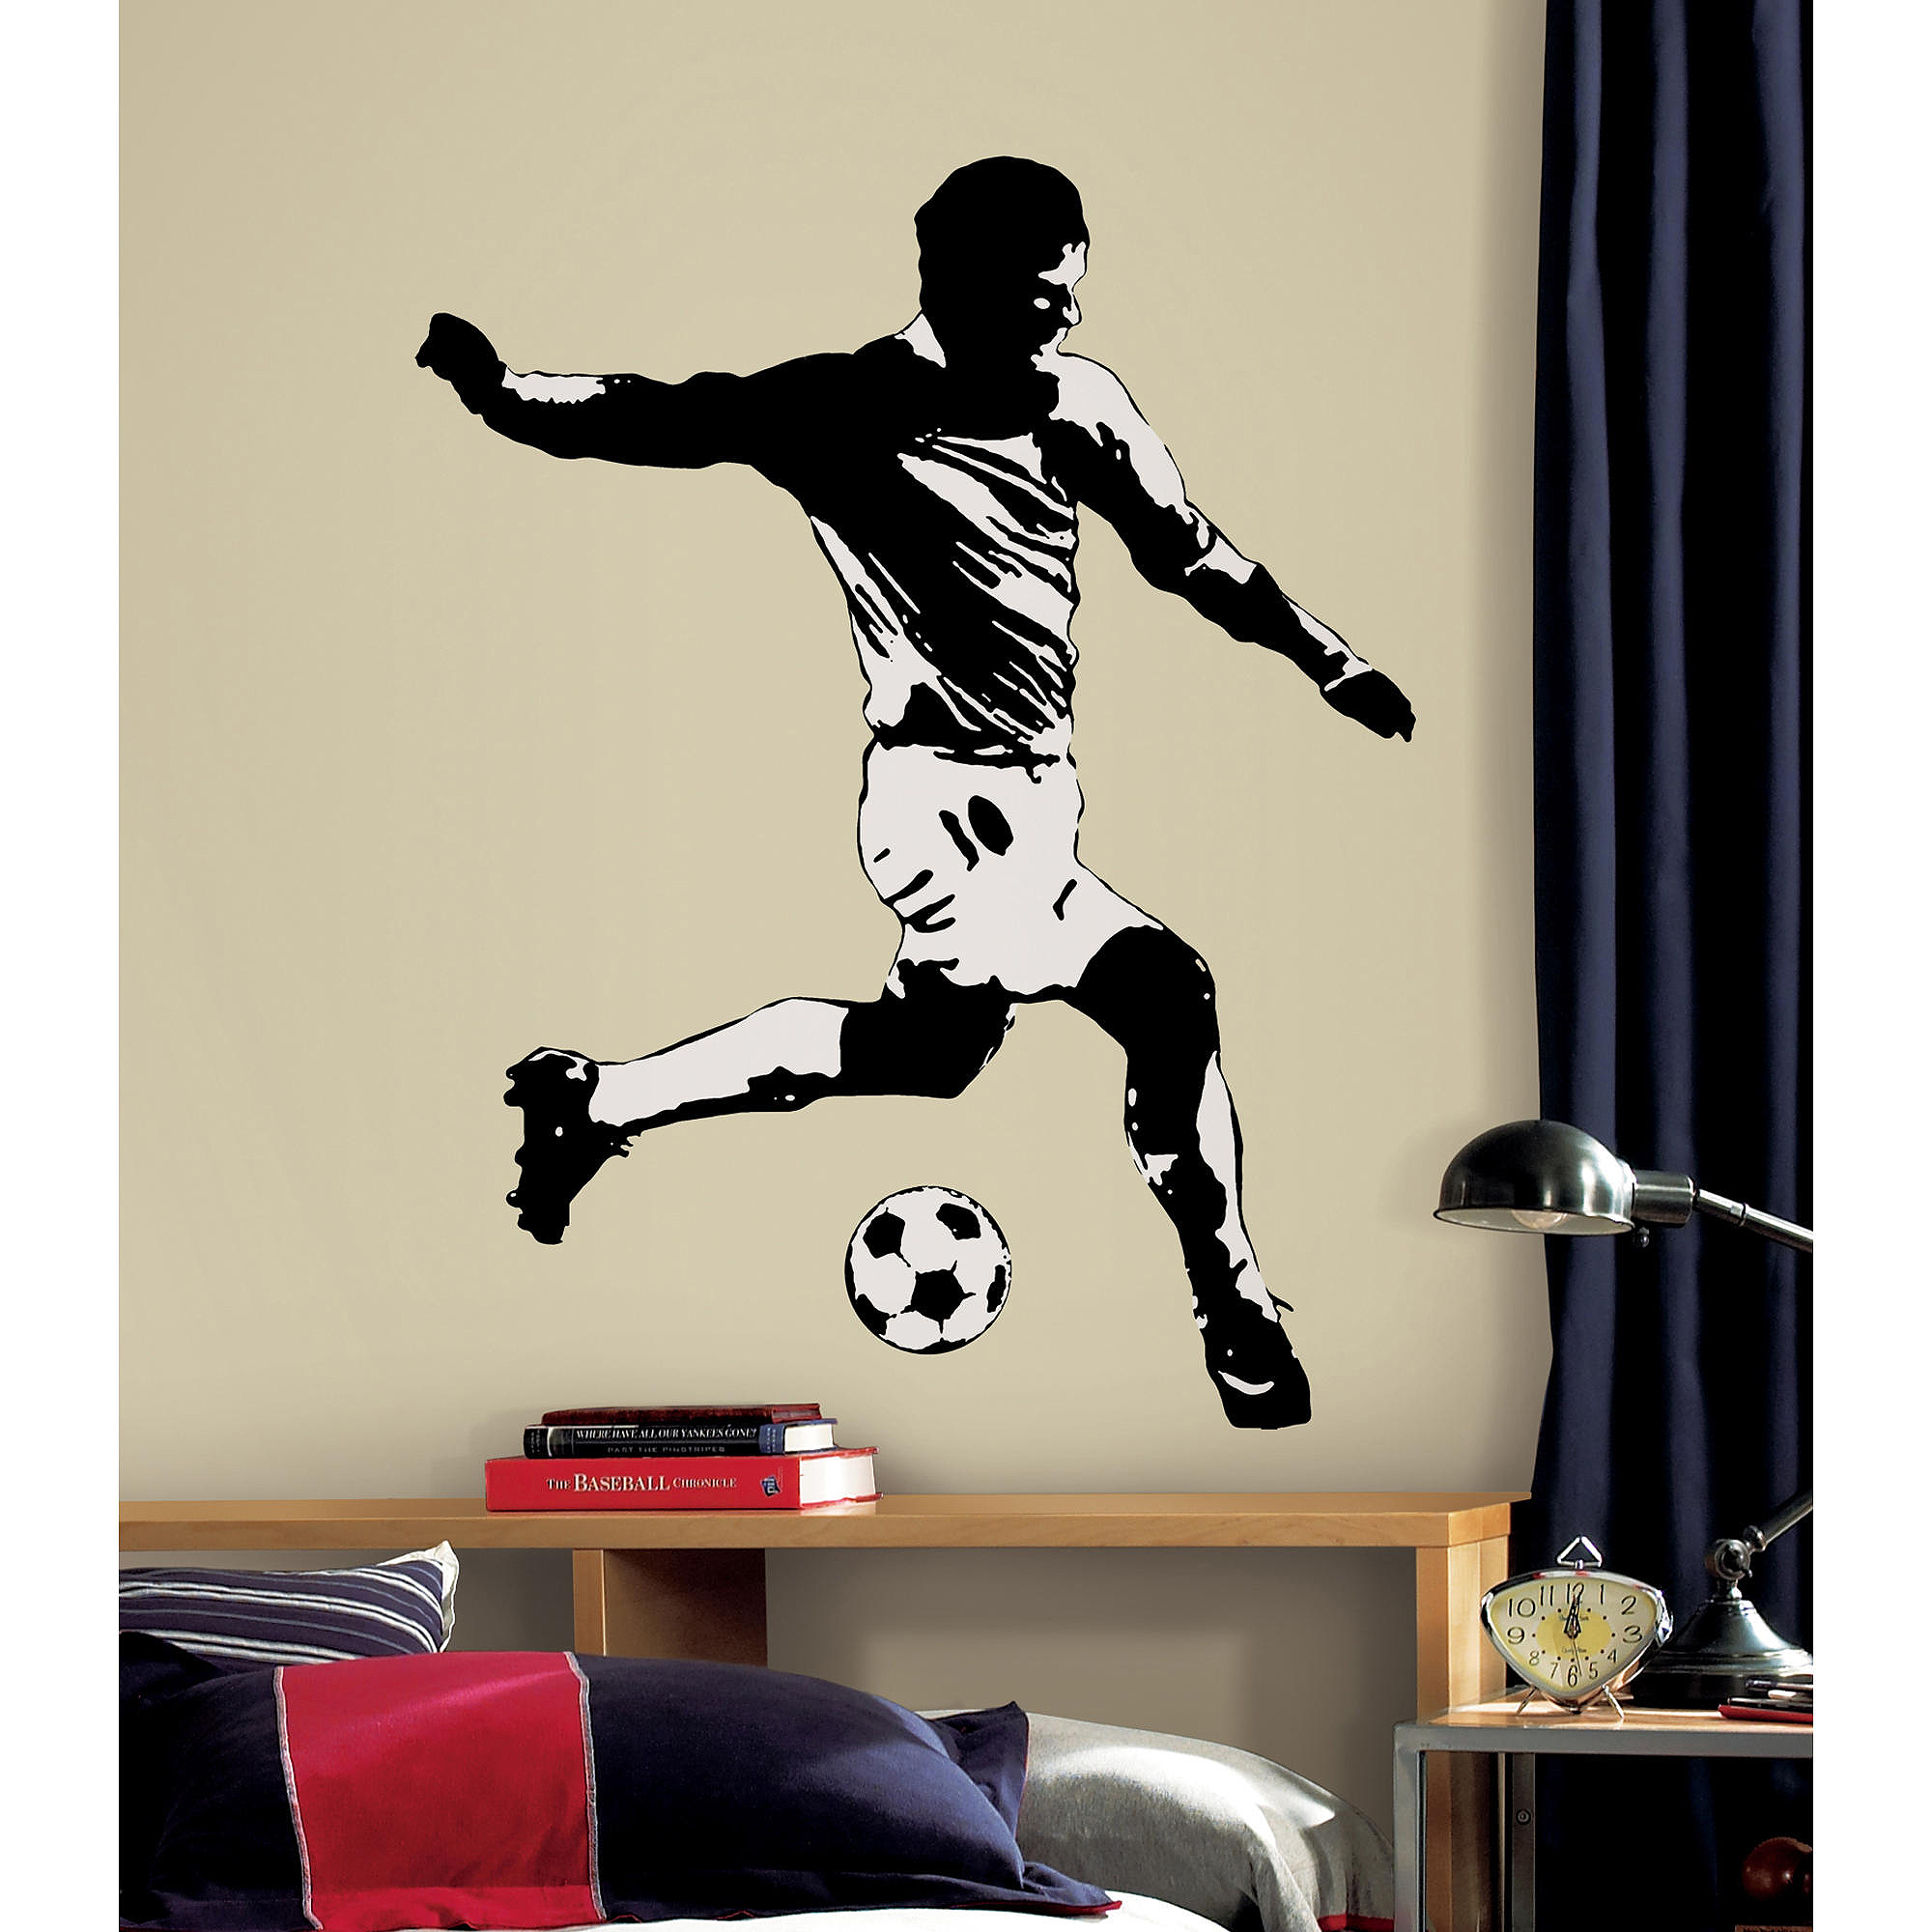 RoomMates Soccer Player Peel and Stick Giant Wall Decals